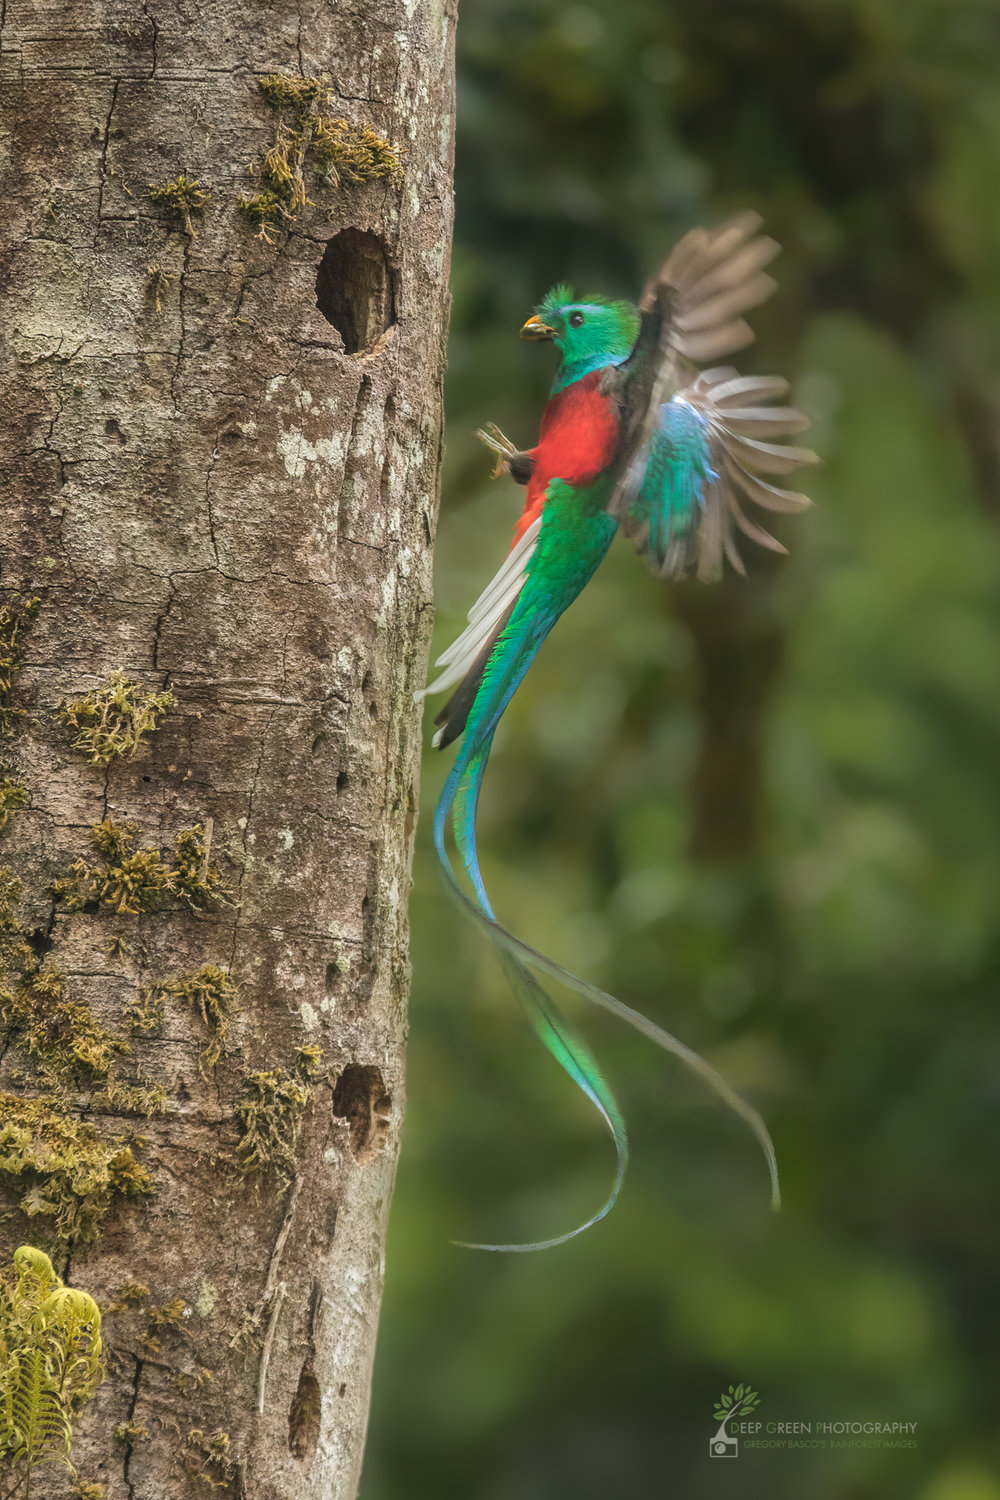 A male Resplendent Quetzal delivers prey to its chicks in a cloud forest in Costa Rica